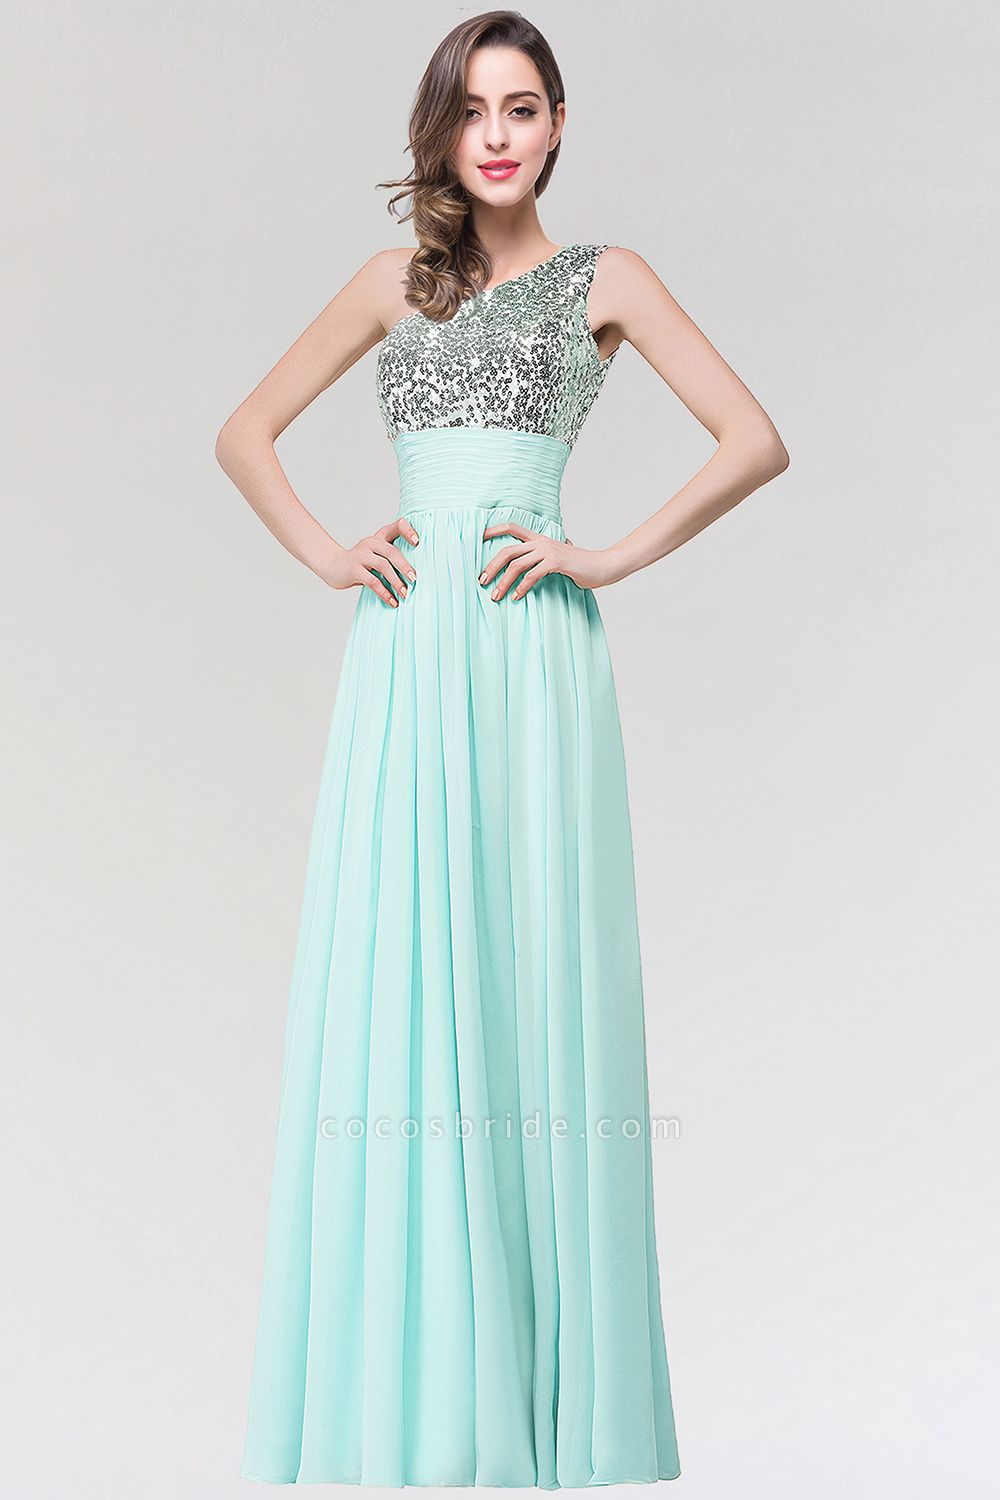 A-line Chiffon One-Shoulder Sleeveless Floor-Length Bridesmaid Dress with Sequins